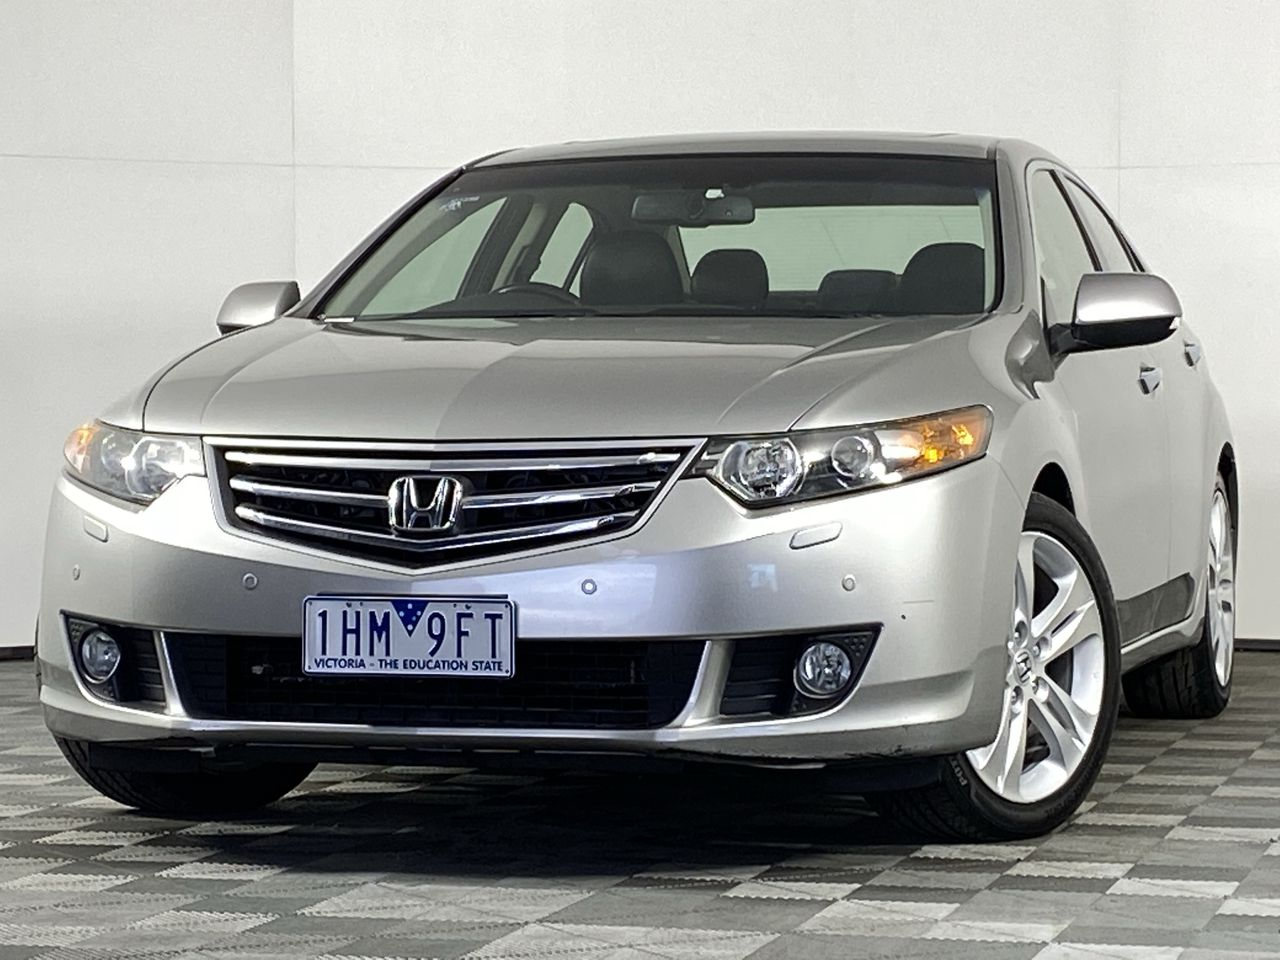 2011 Honda Accord Euro Luxury 8TH GEN Automatic Sedan